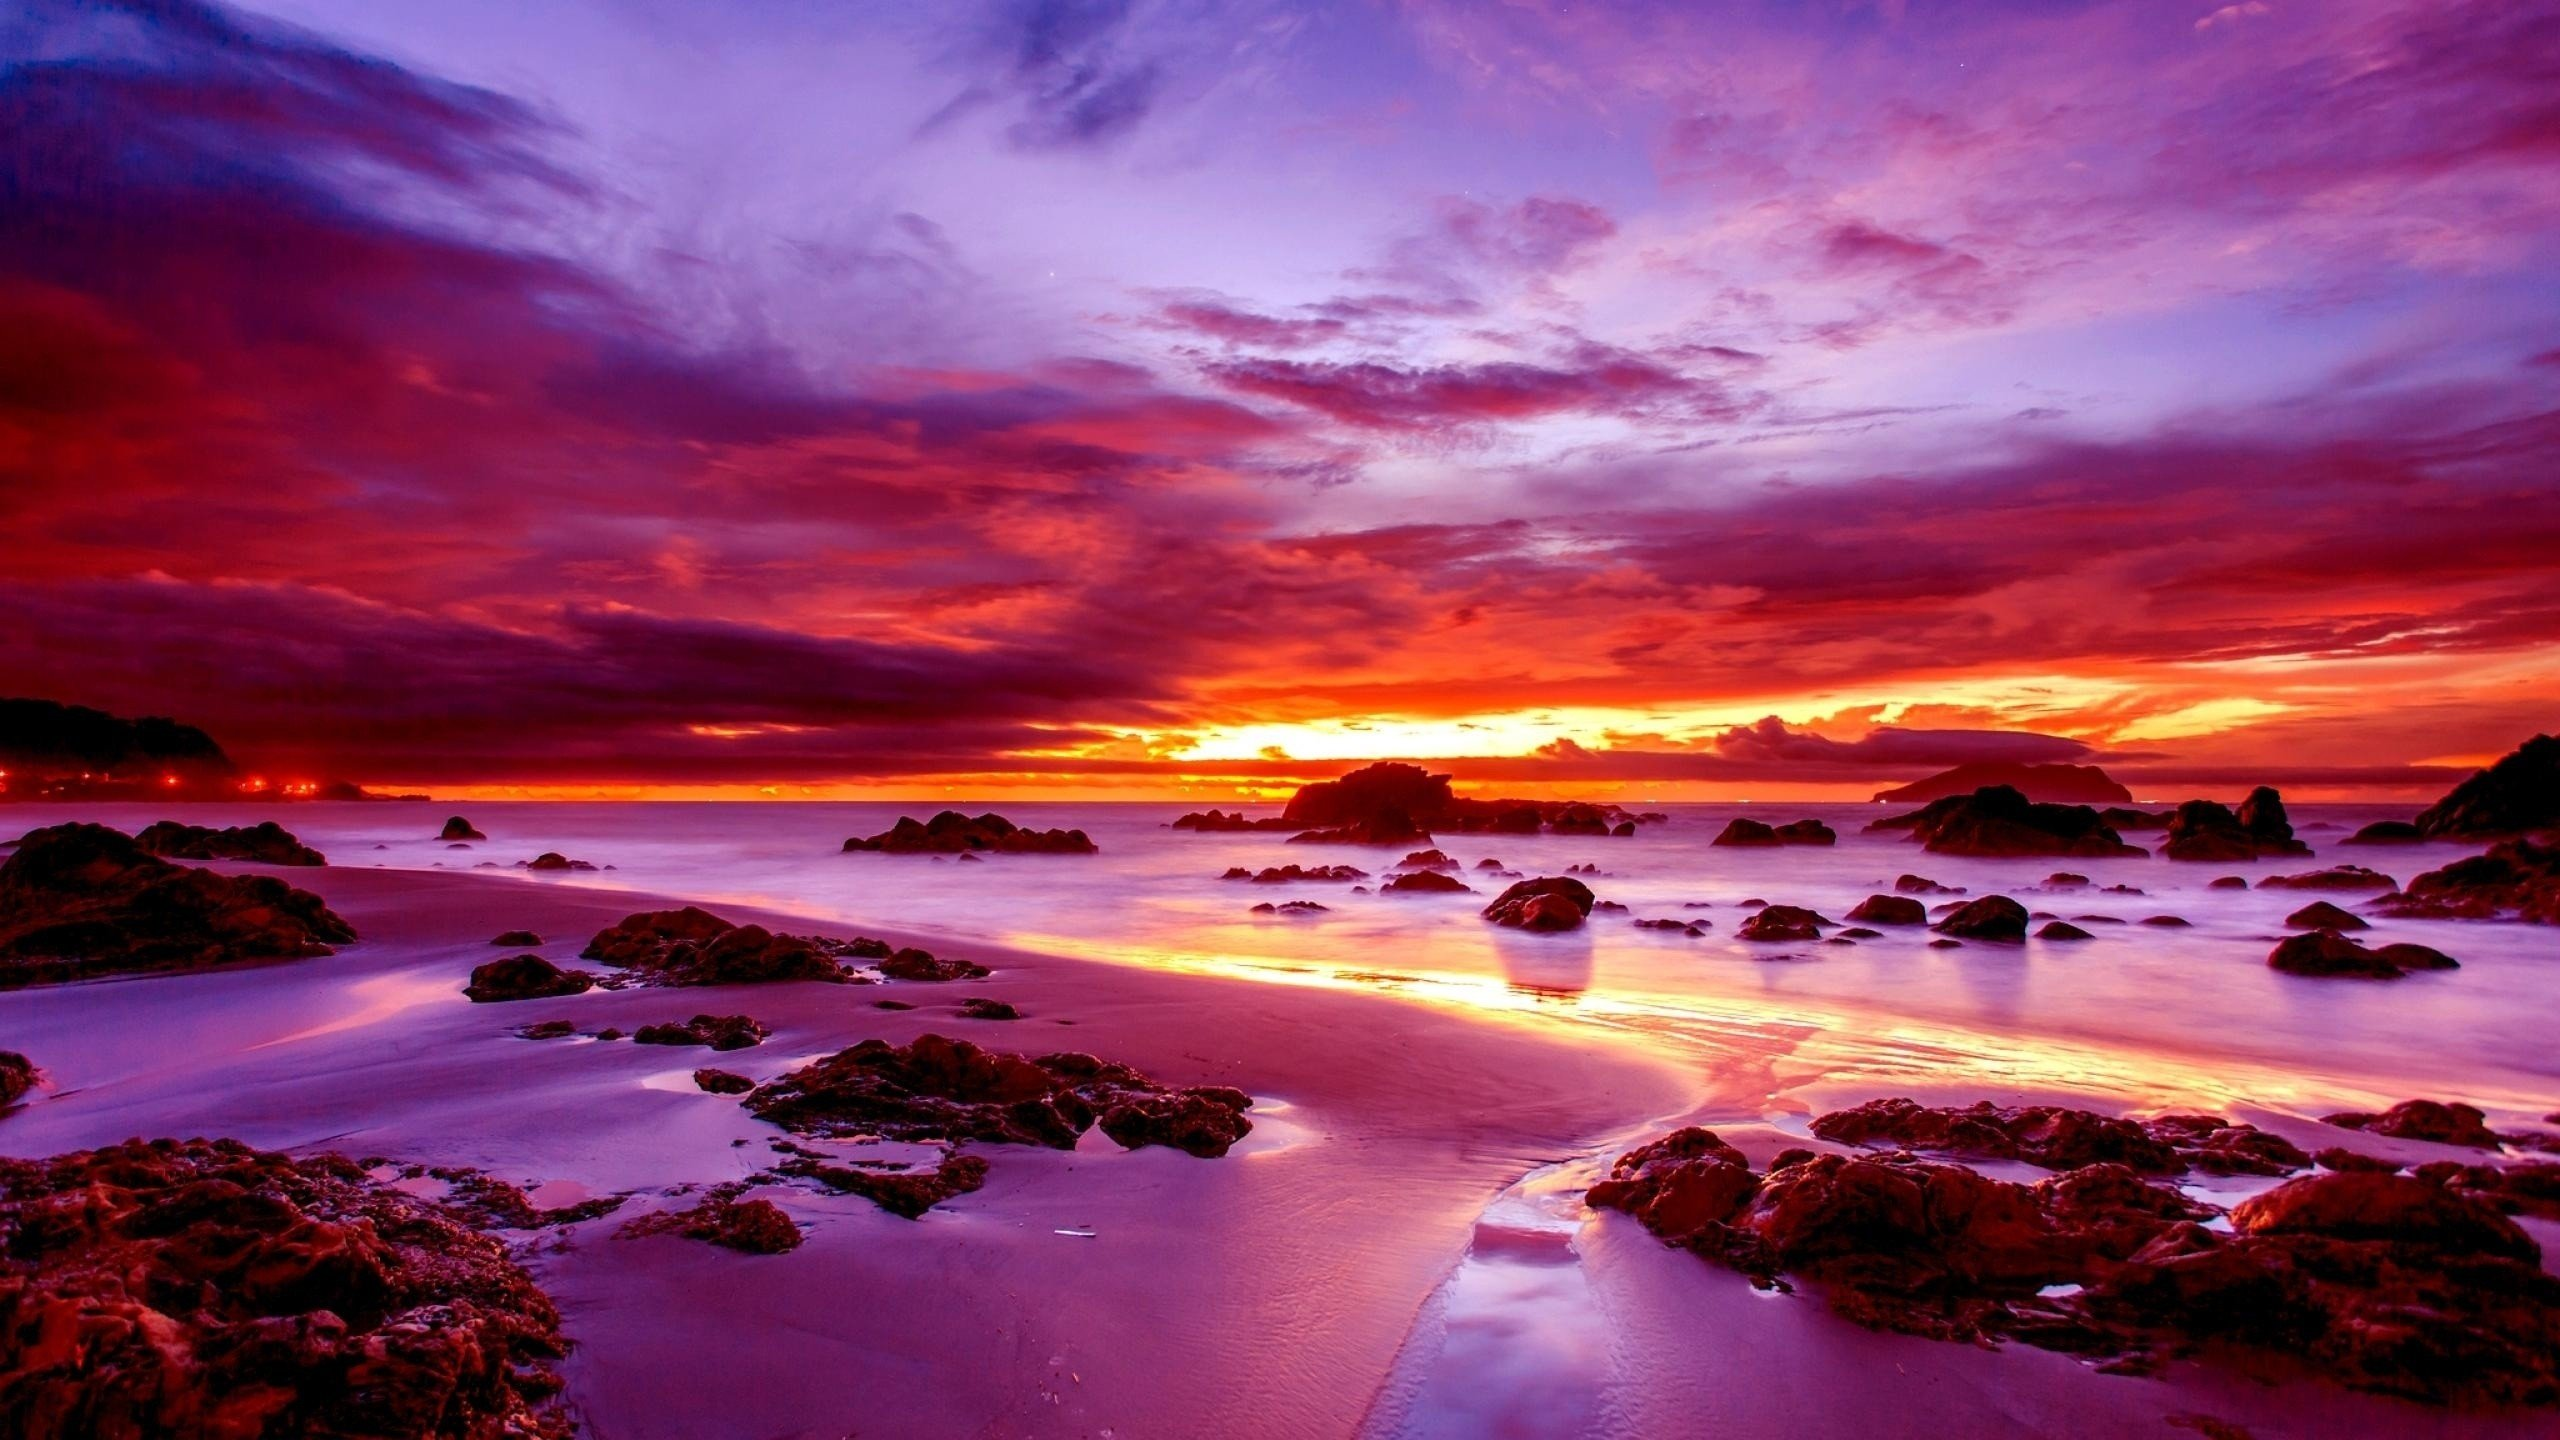 Wallpaper Sky Sunset Water Purple Ocean Nature PicsFabcom 2560x1440